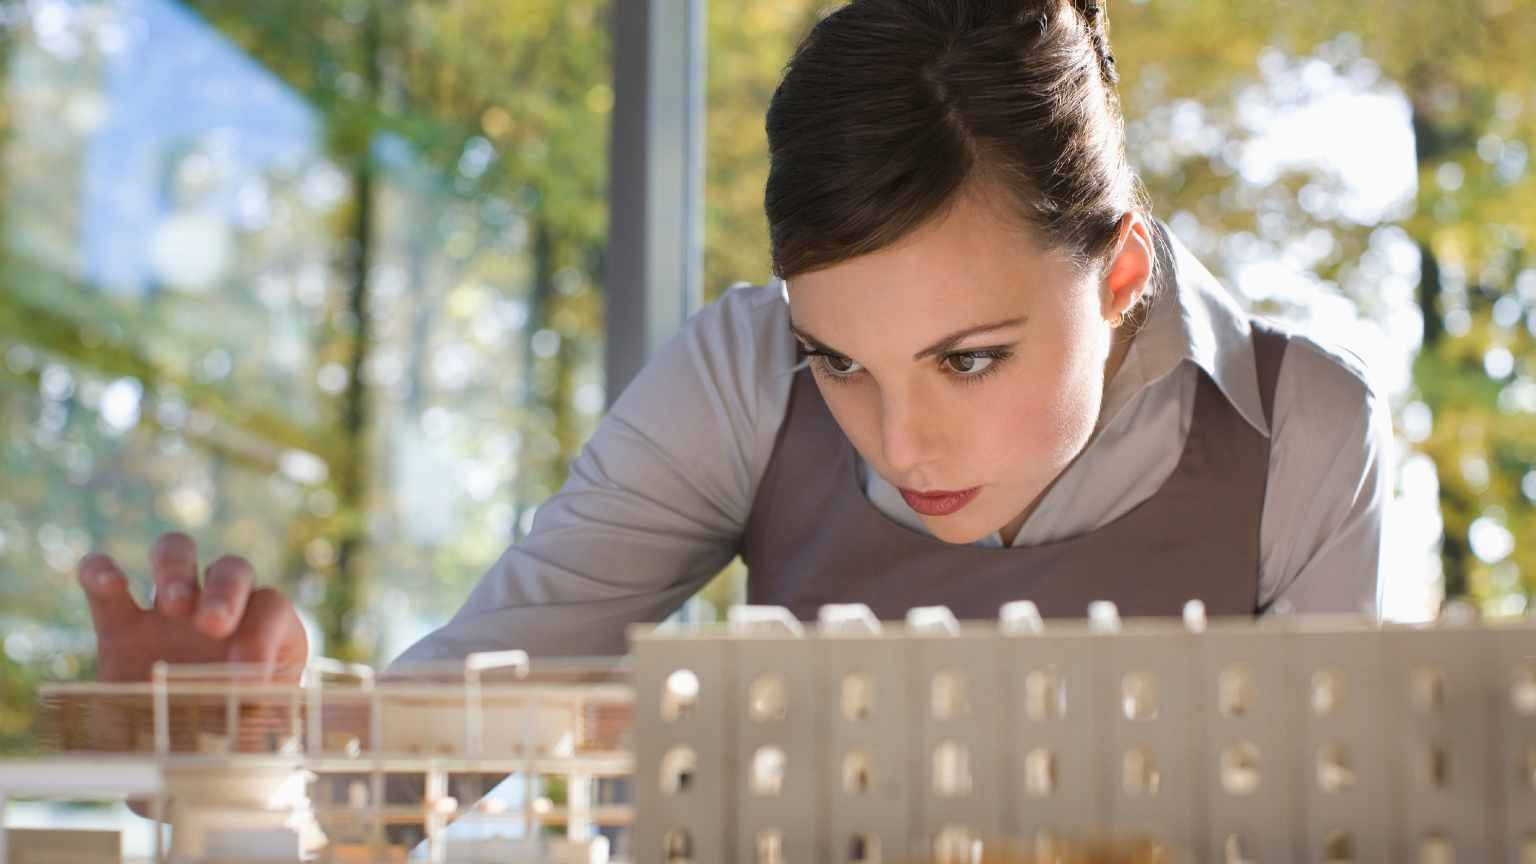 woman looking at an architectural model